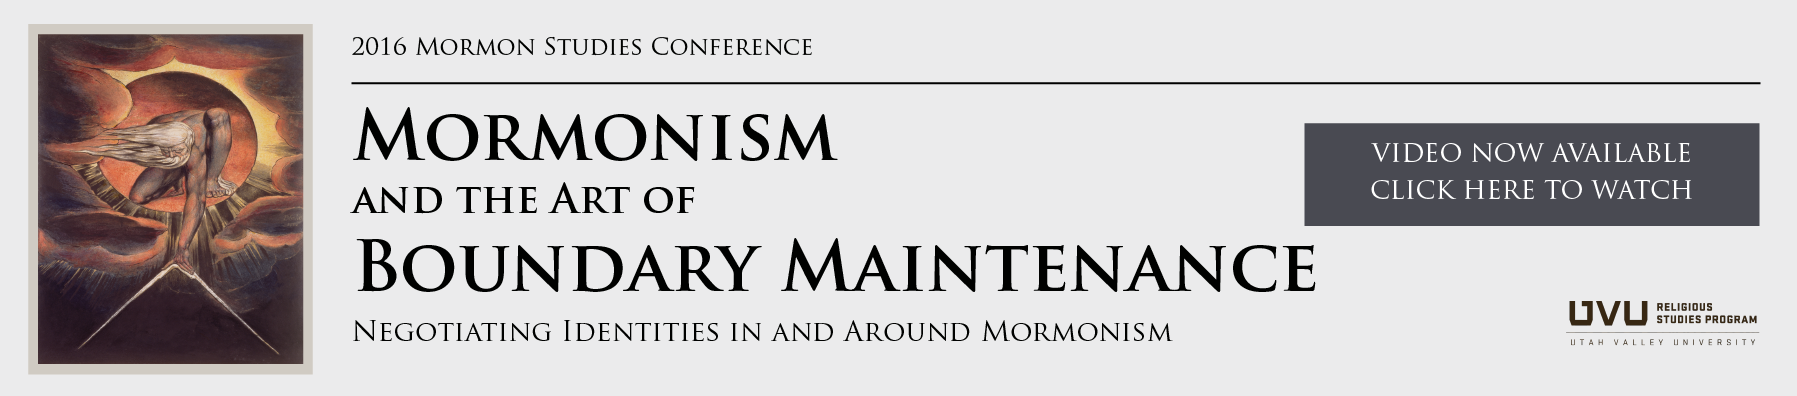 Mormonism and the art of Boundary Maintenance